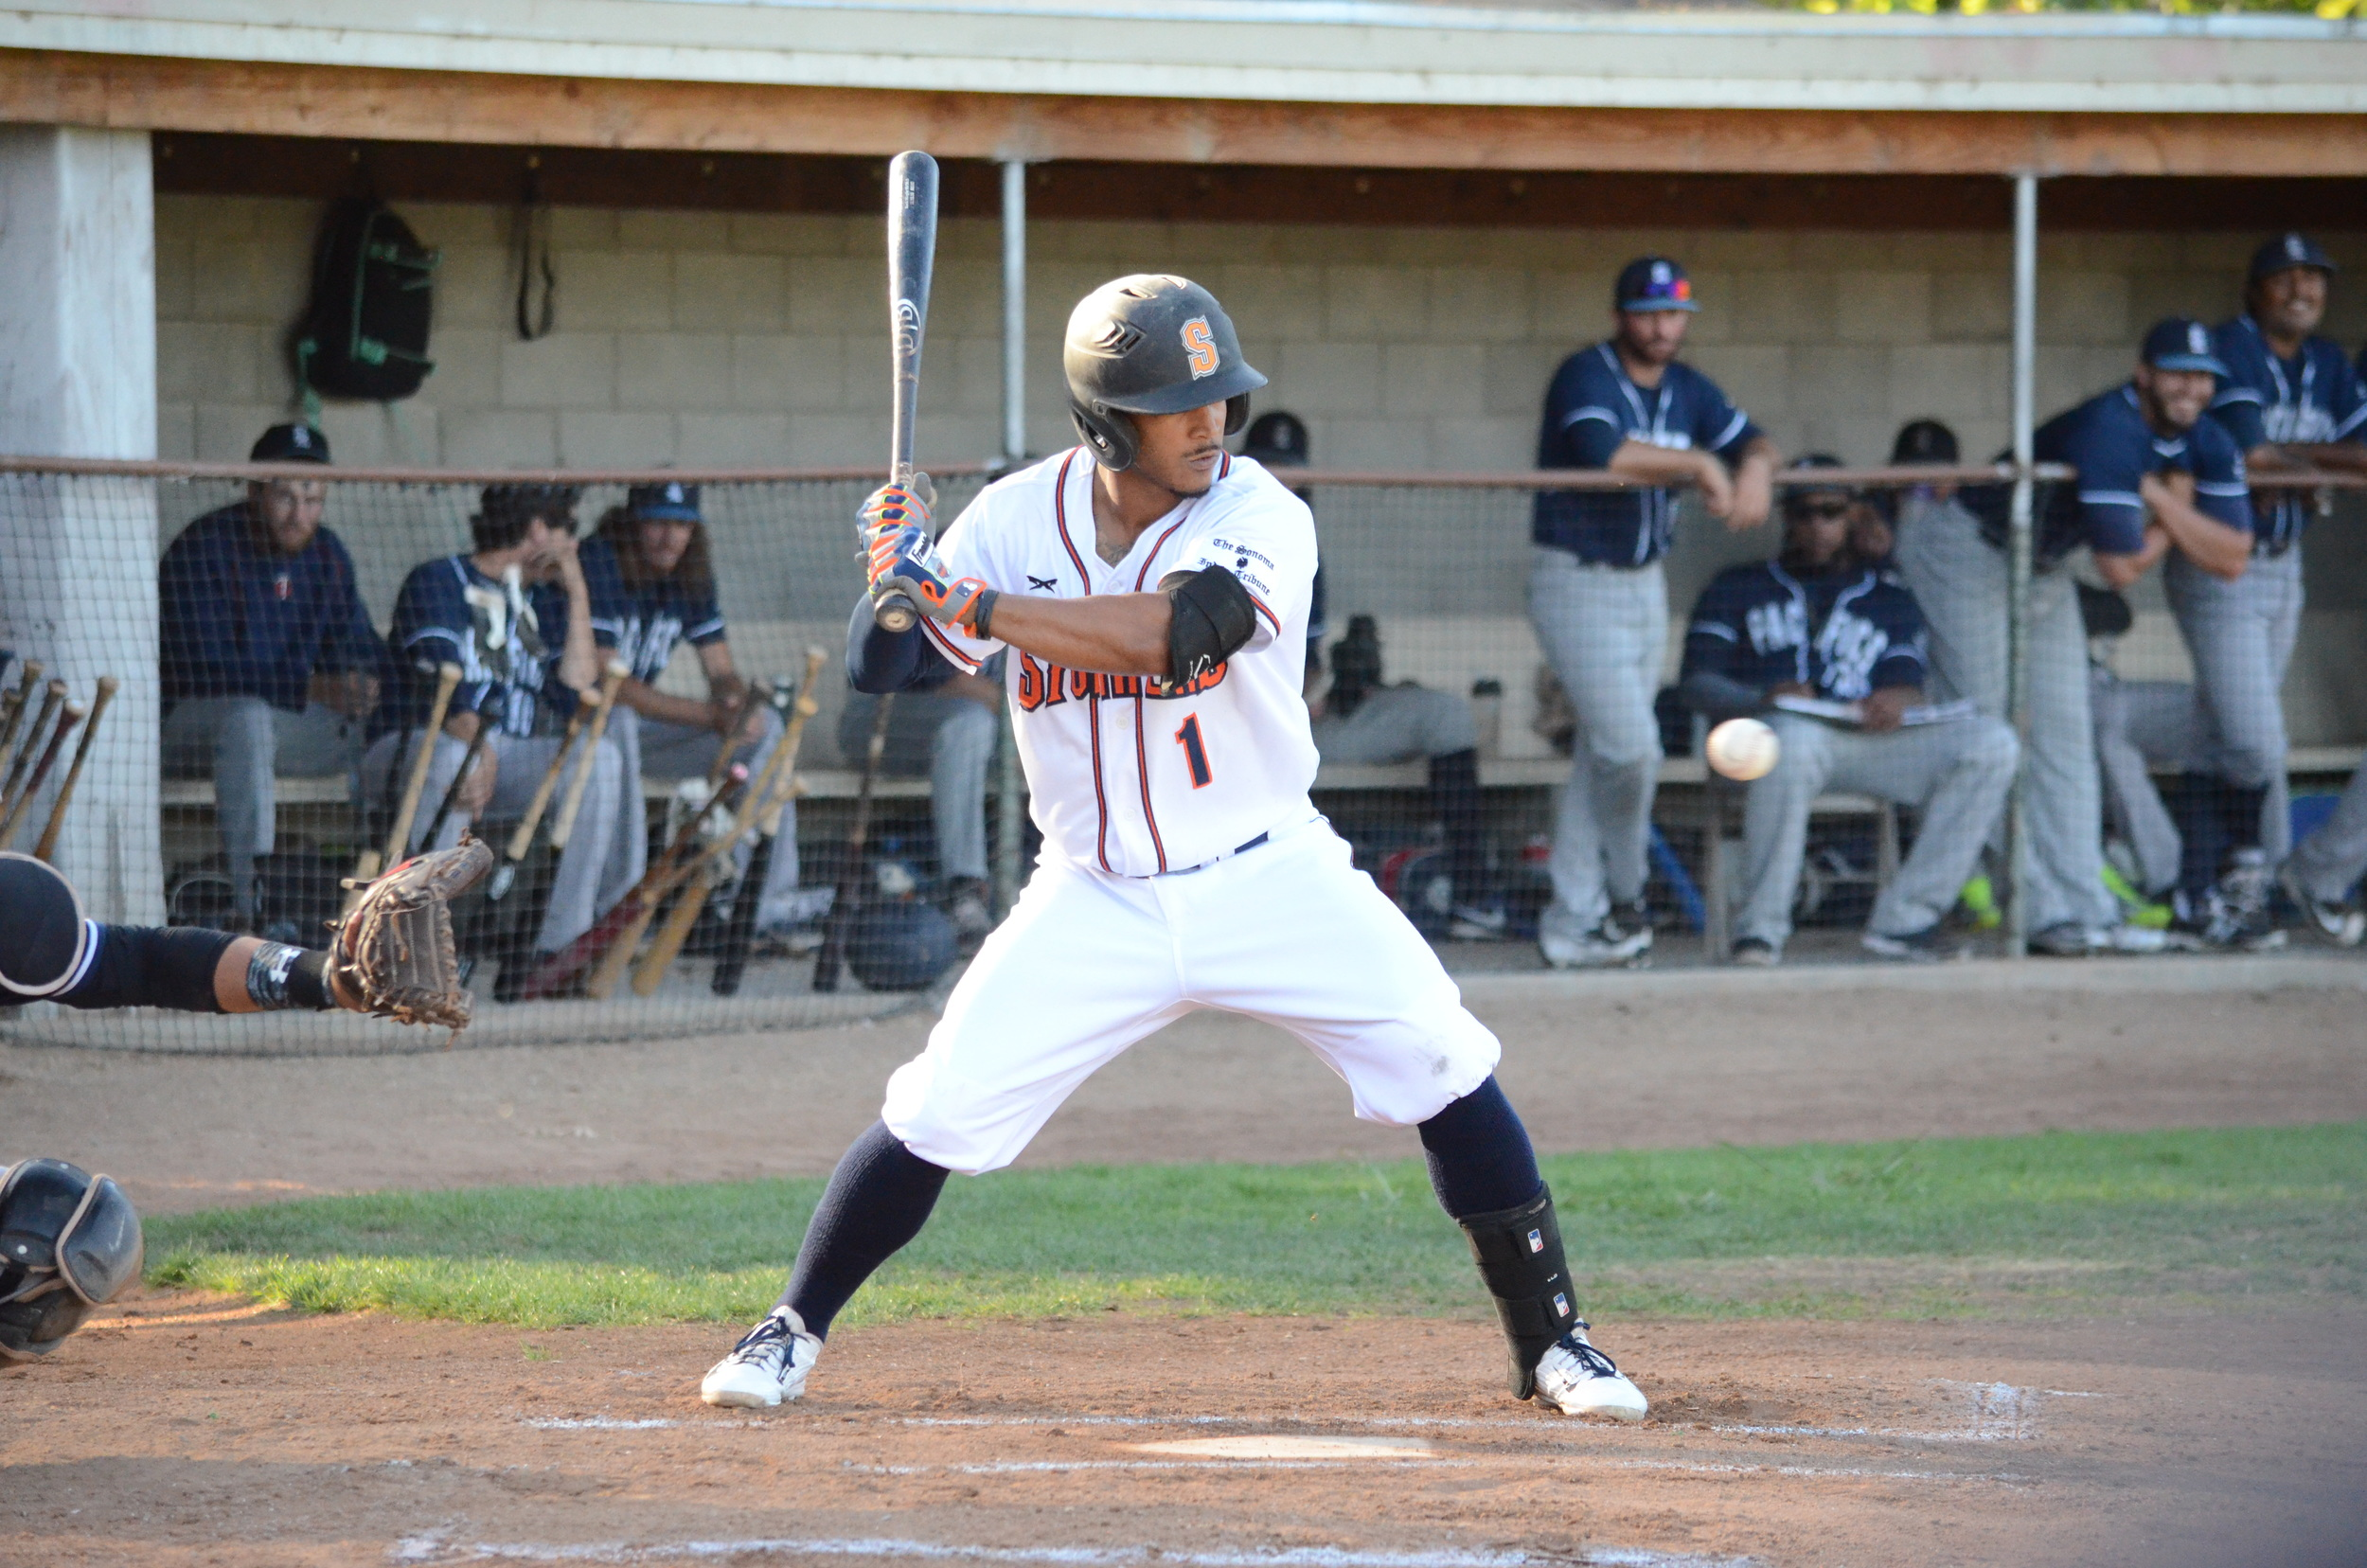 Matt Hibbert got things started at the top of the order in Sonoma's 6-2 win over the Pacifics Thursday. Hibbert finished 2 for 4 with two runs scored as the Stompers won their seventh straight game.   James Toy III/Sonoma Stompers